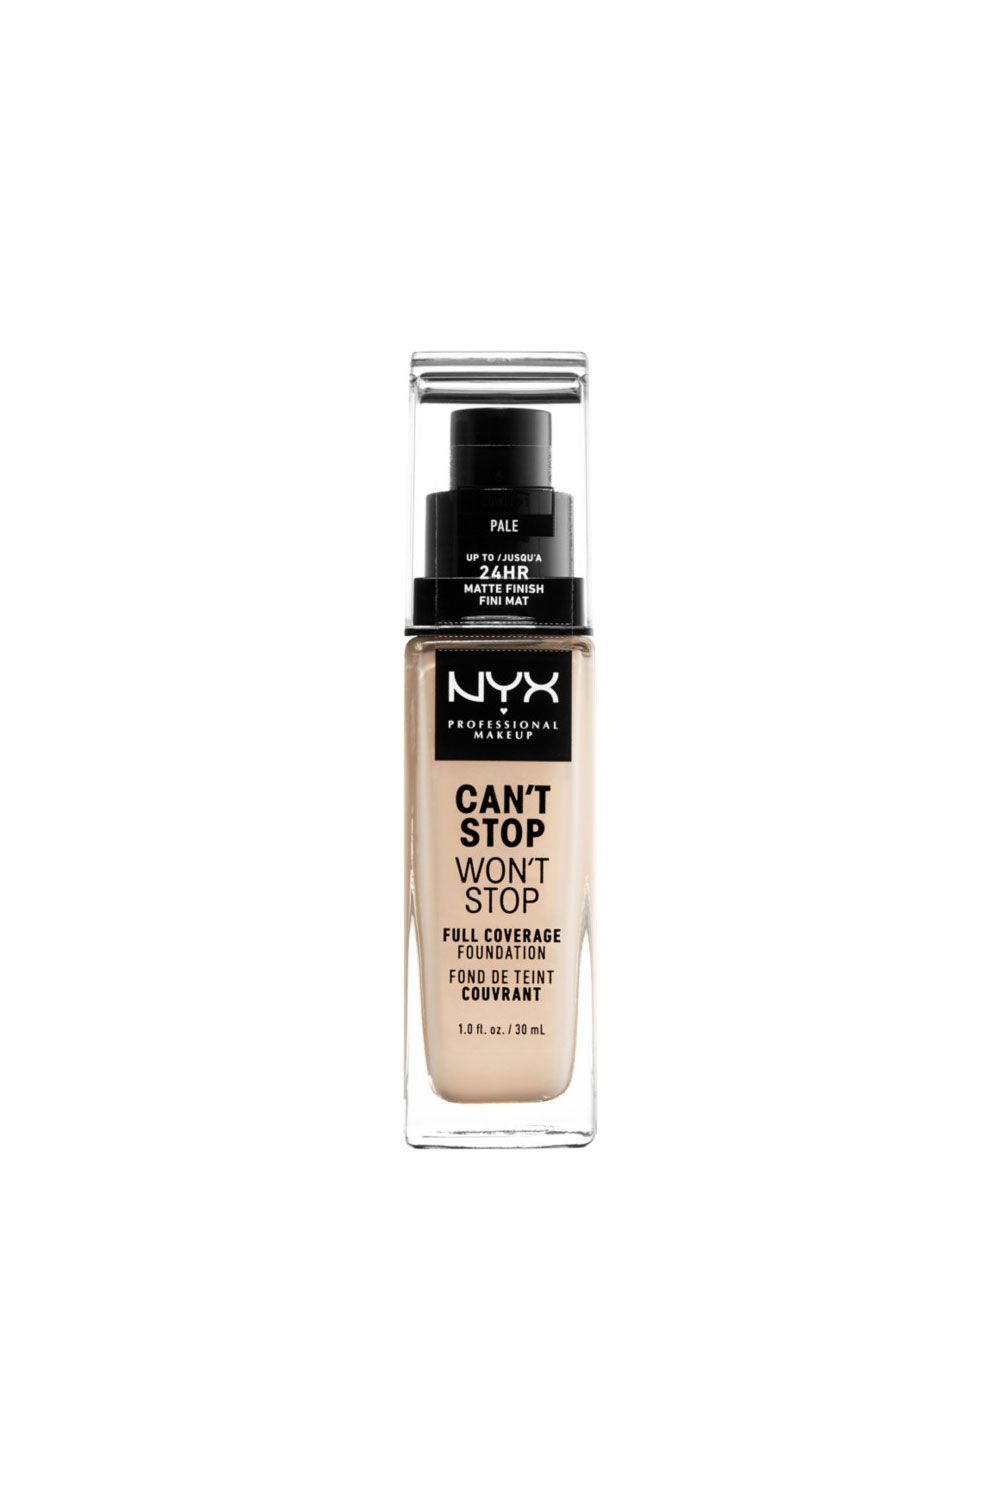 10 Best Drugstore Foundations For Oily Skin 2021